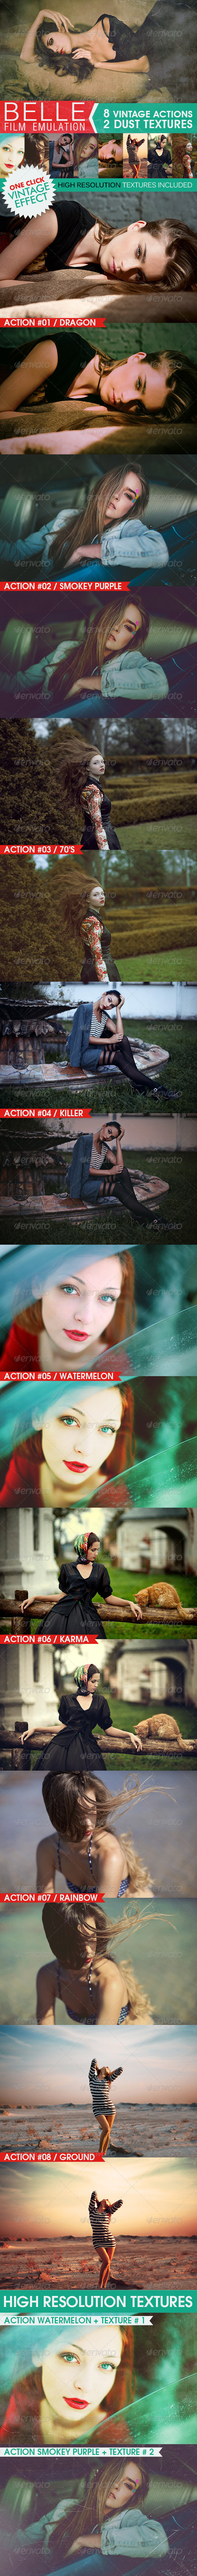 GraphicRiver HQ Film Emulation Actions V 6925871